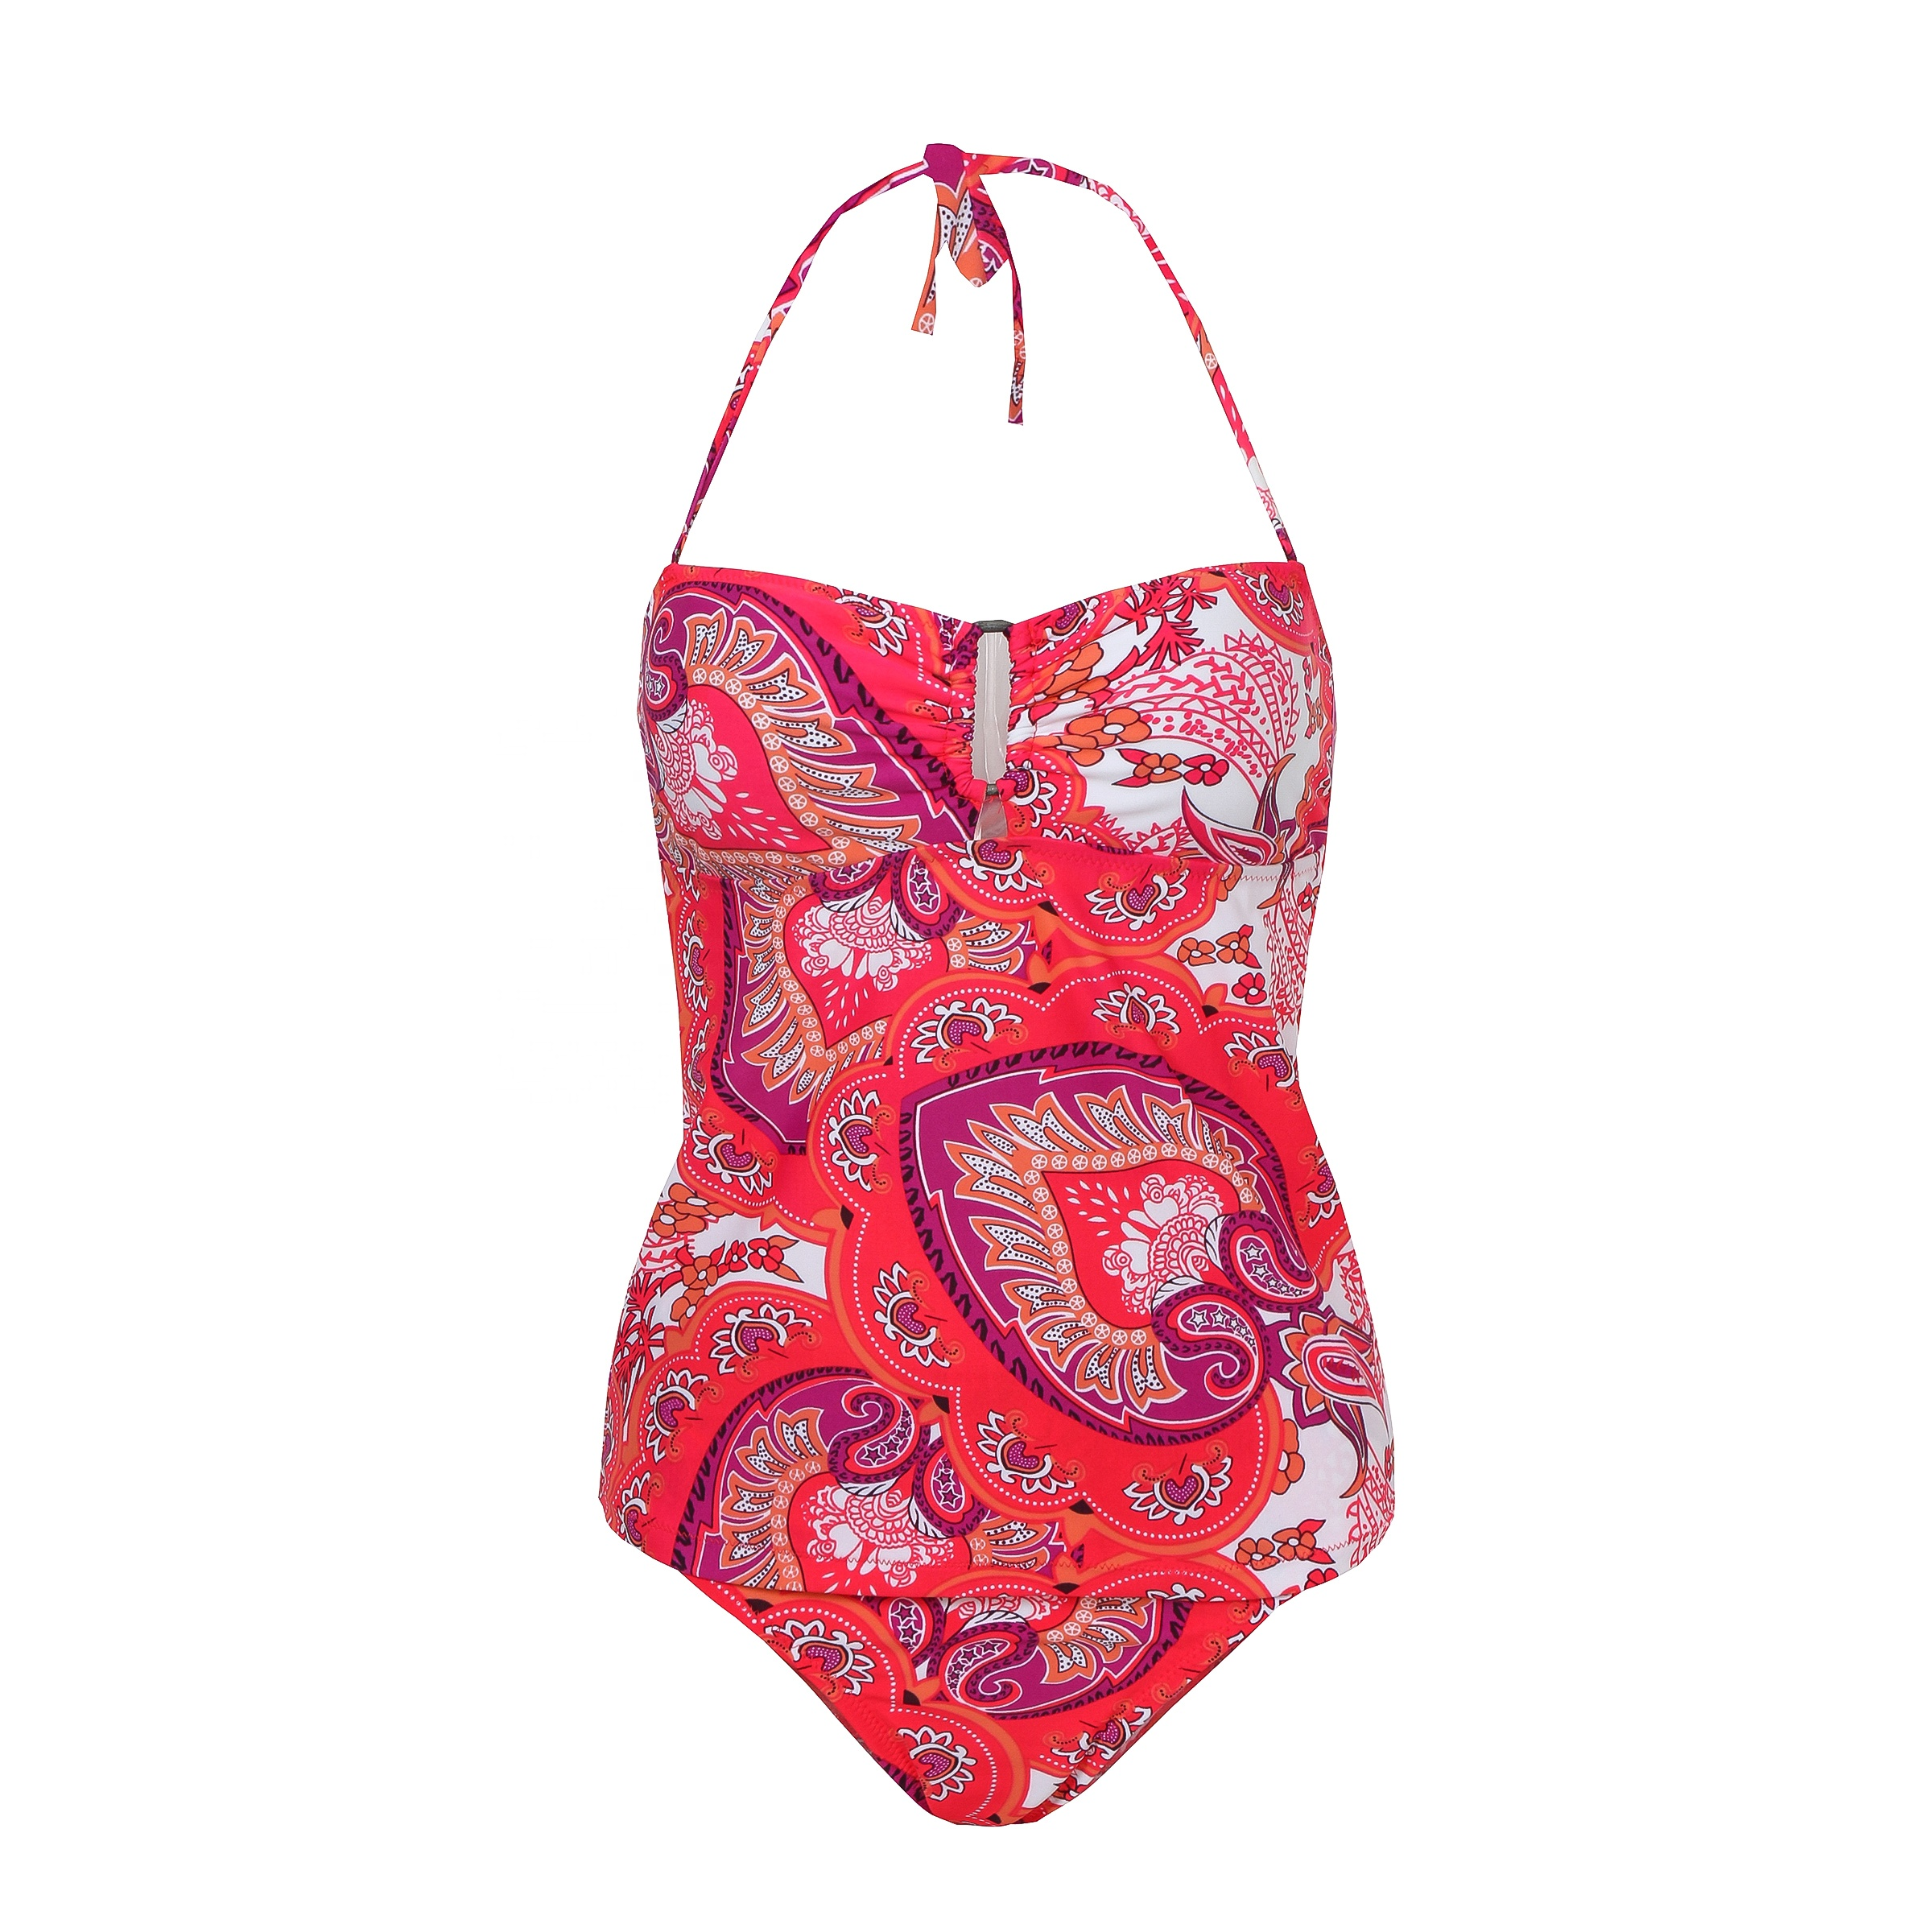 New Style in stock Hot selling ladies print bikini swimwear with halter bathing swimsuit two pieces bikini set